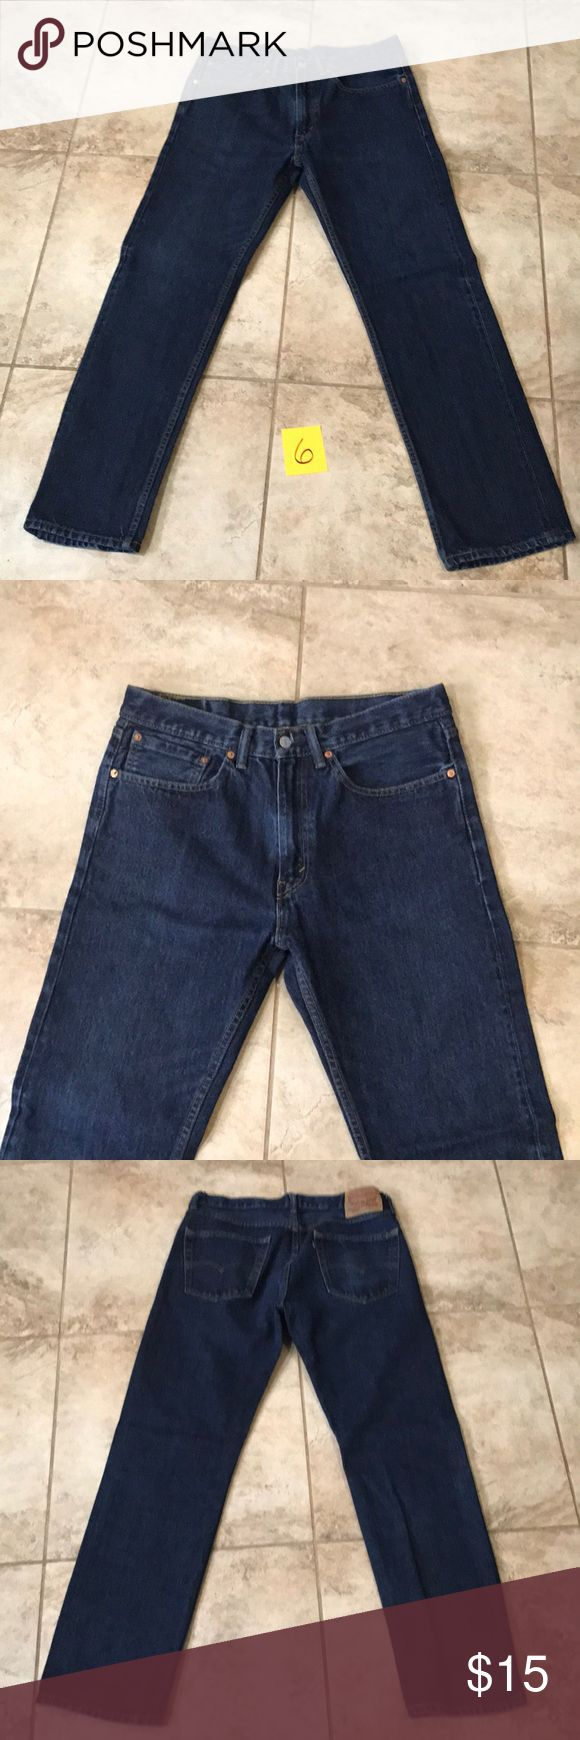 Gently used men's Levi's 505 jeans waist 34 L32 Gently used condition blue  Levi's 505 jeans W 34 L32 *price firm Can not bundle more than 2 pairs due to weight restrictions Levi's Jeans Straight